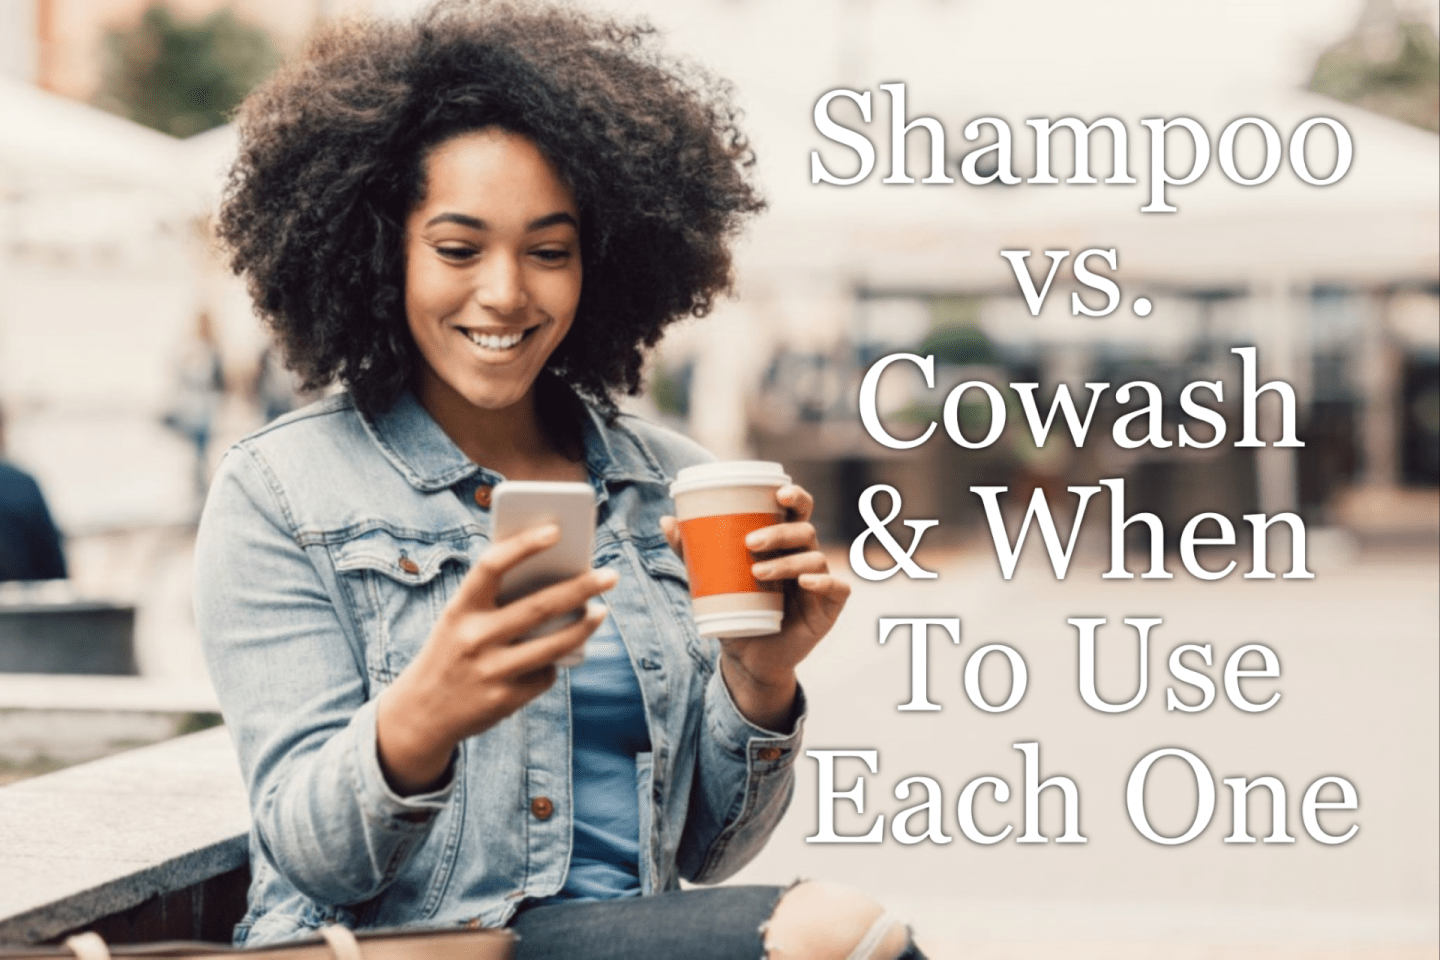 Shampoo vs. Cowash & When To Use Each One is a big issues in the natural hair community. We break them both down and explain.